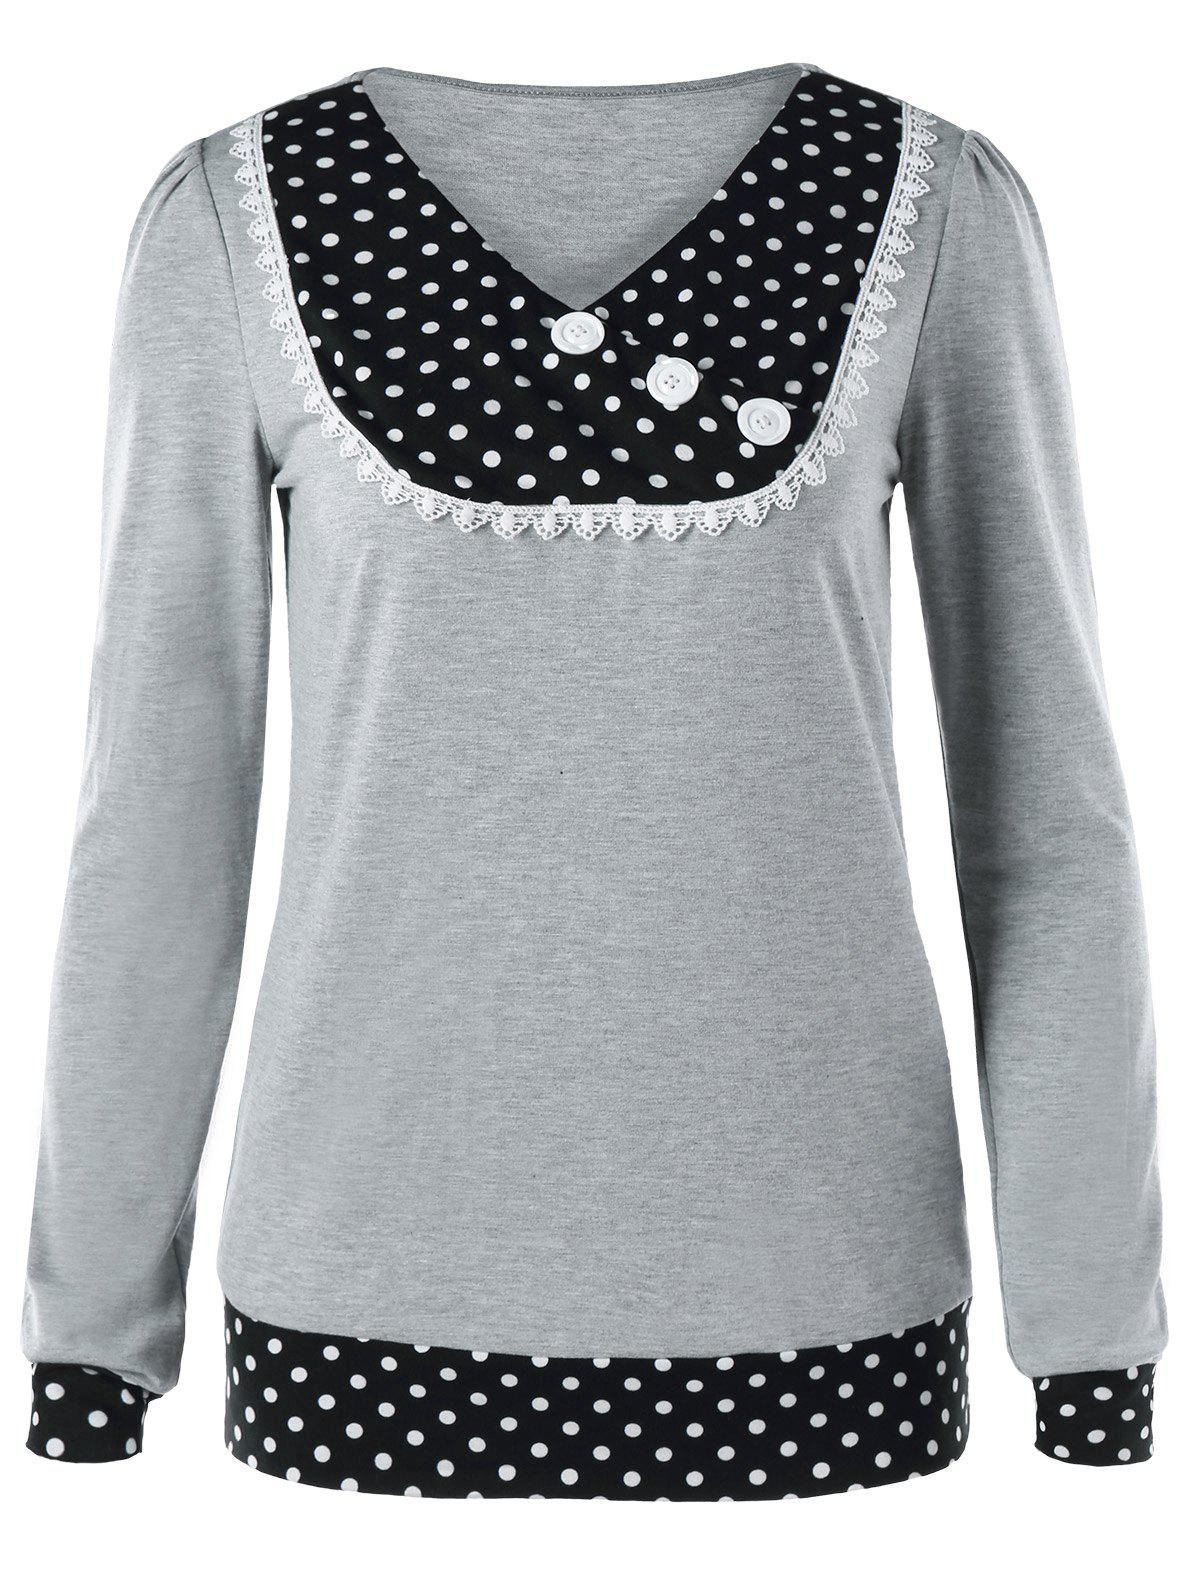 Chic V Neck Buttoned Polka Dot Tee